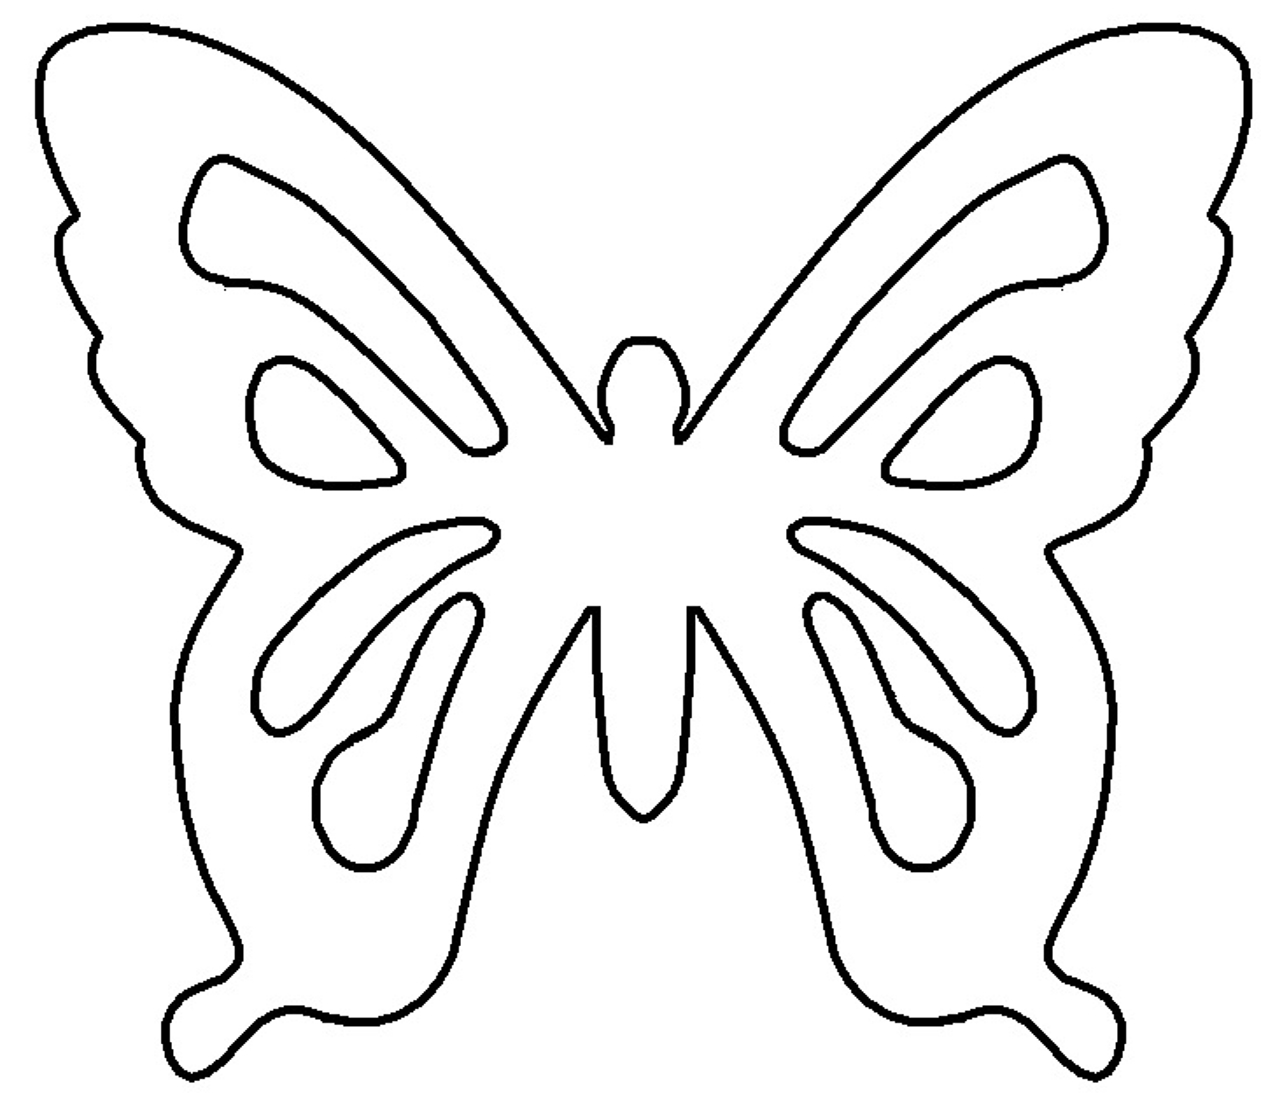 Free Butterfly Template, Download Free Clip Art, Free Clip Art On - Free Printable Butterfly Template